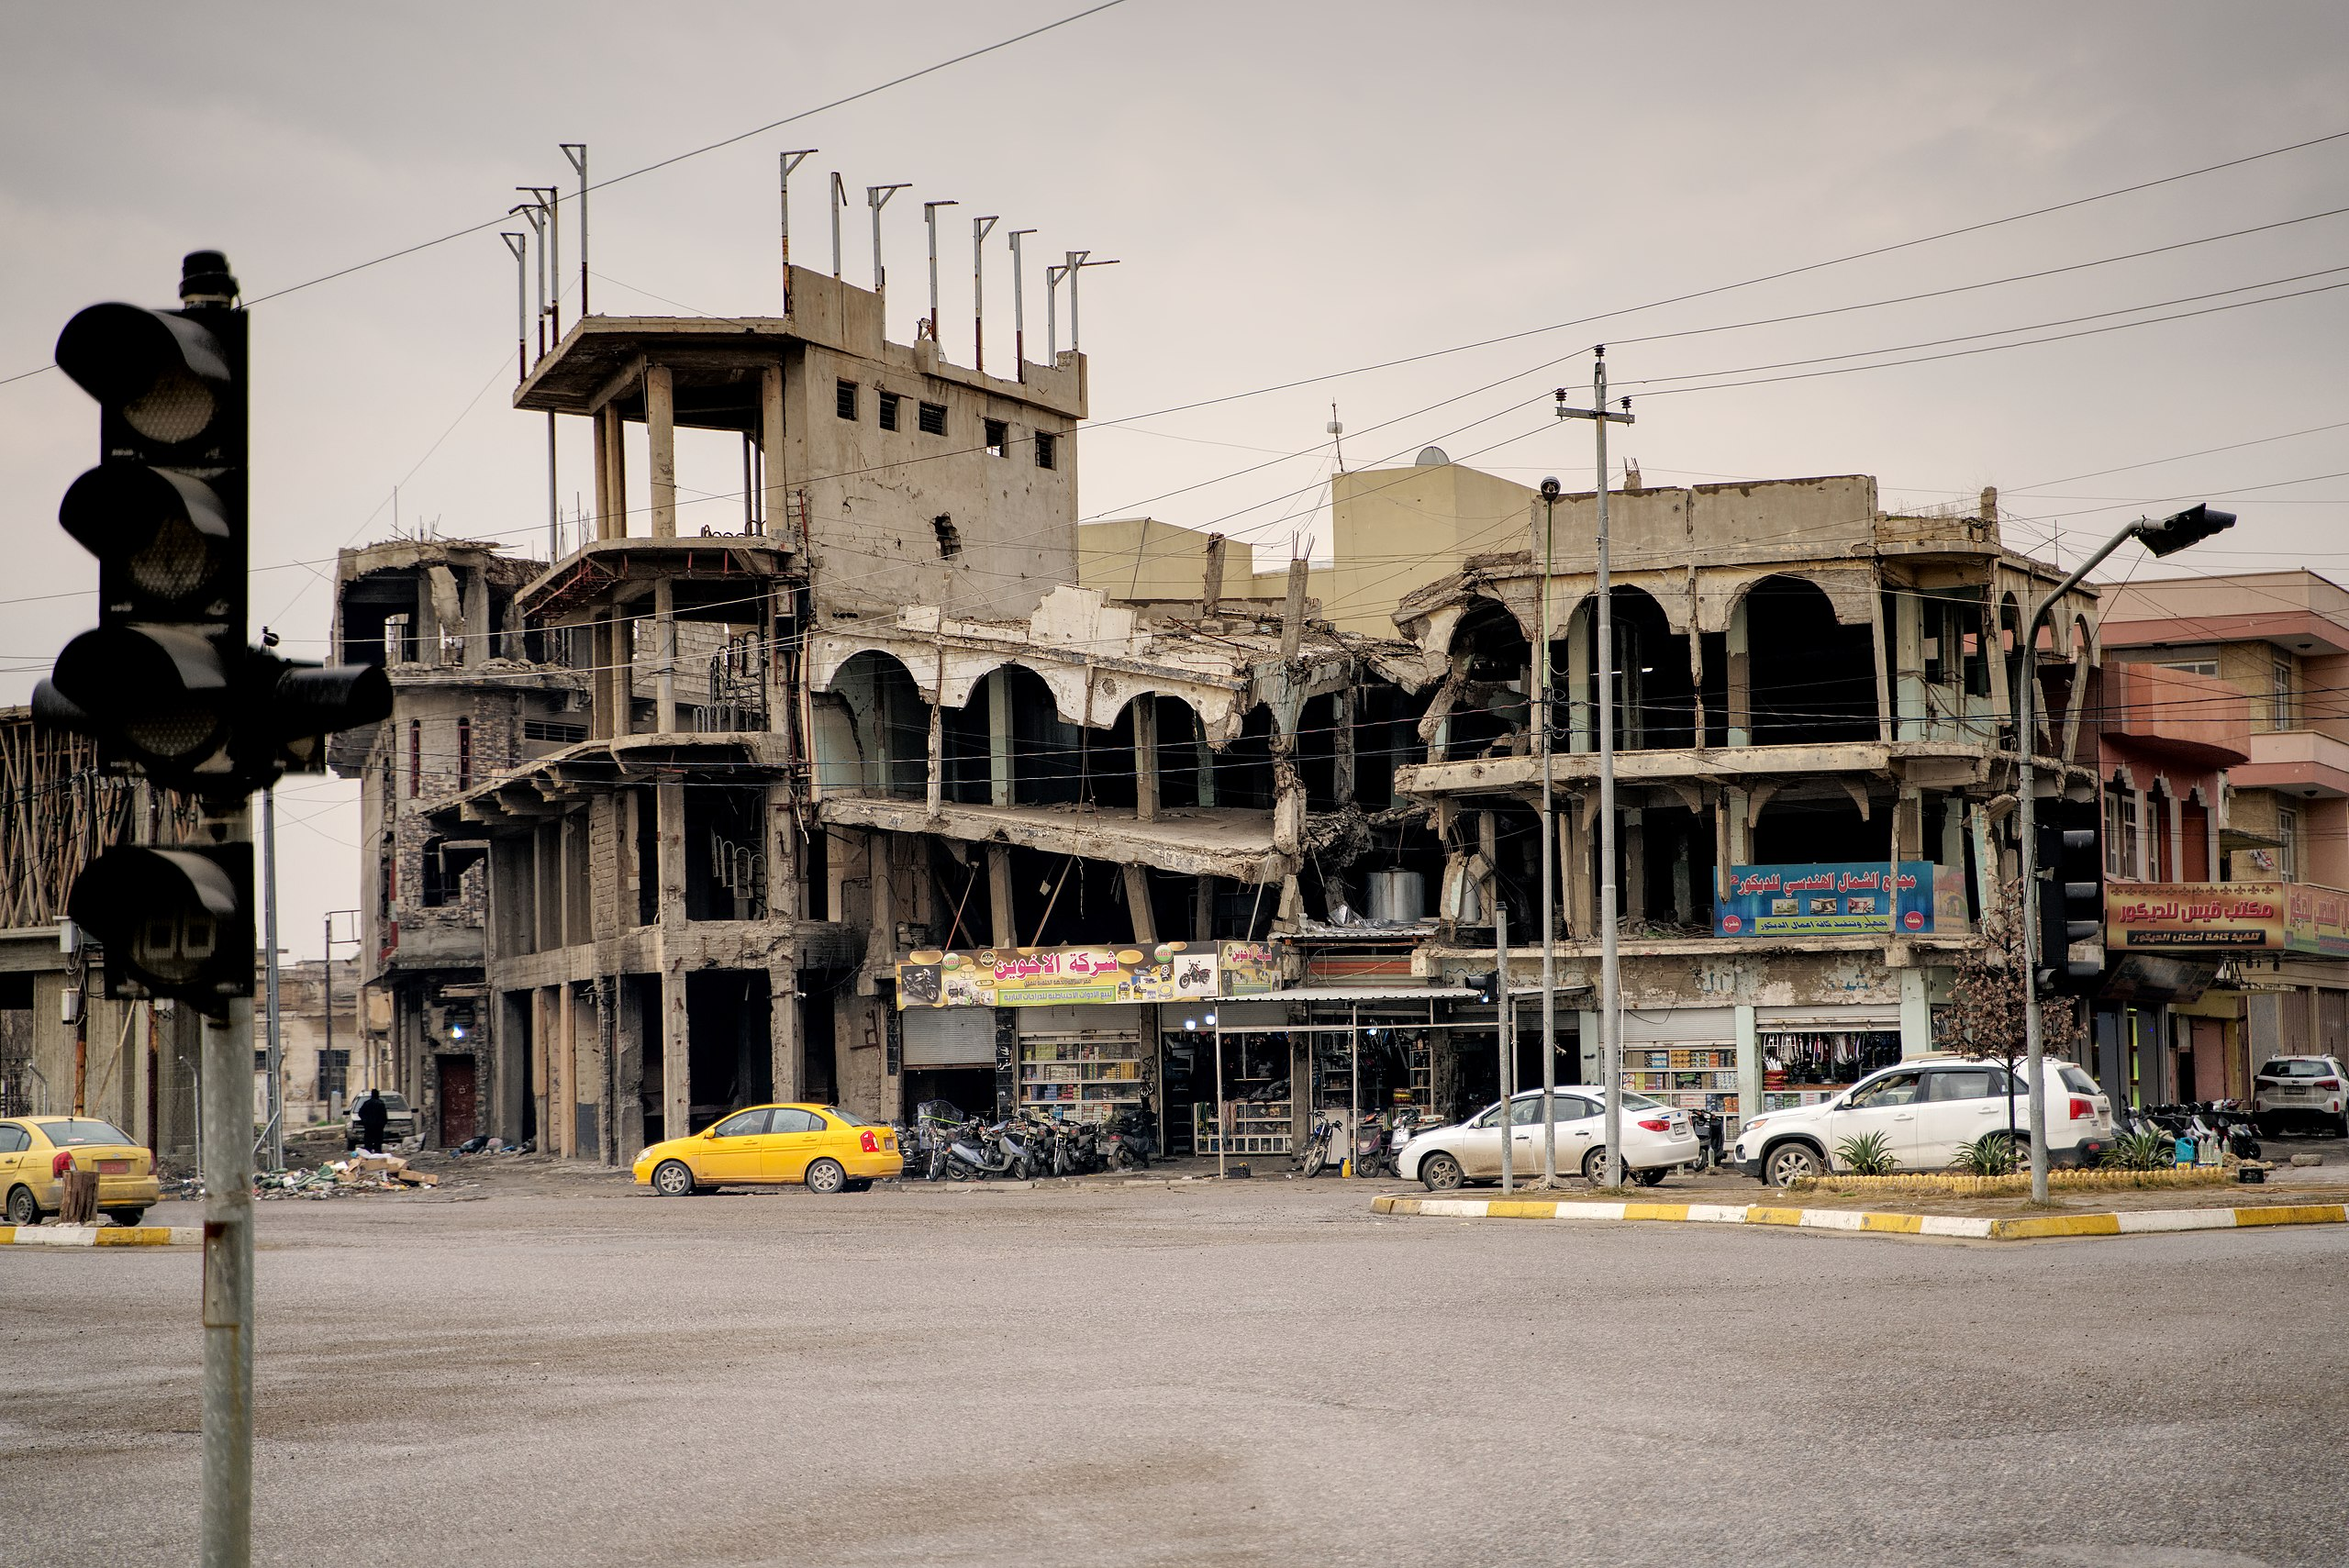 A toxic legacy: remediating pollution in Iraq